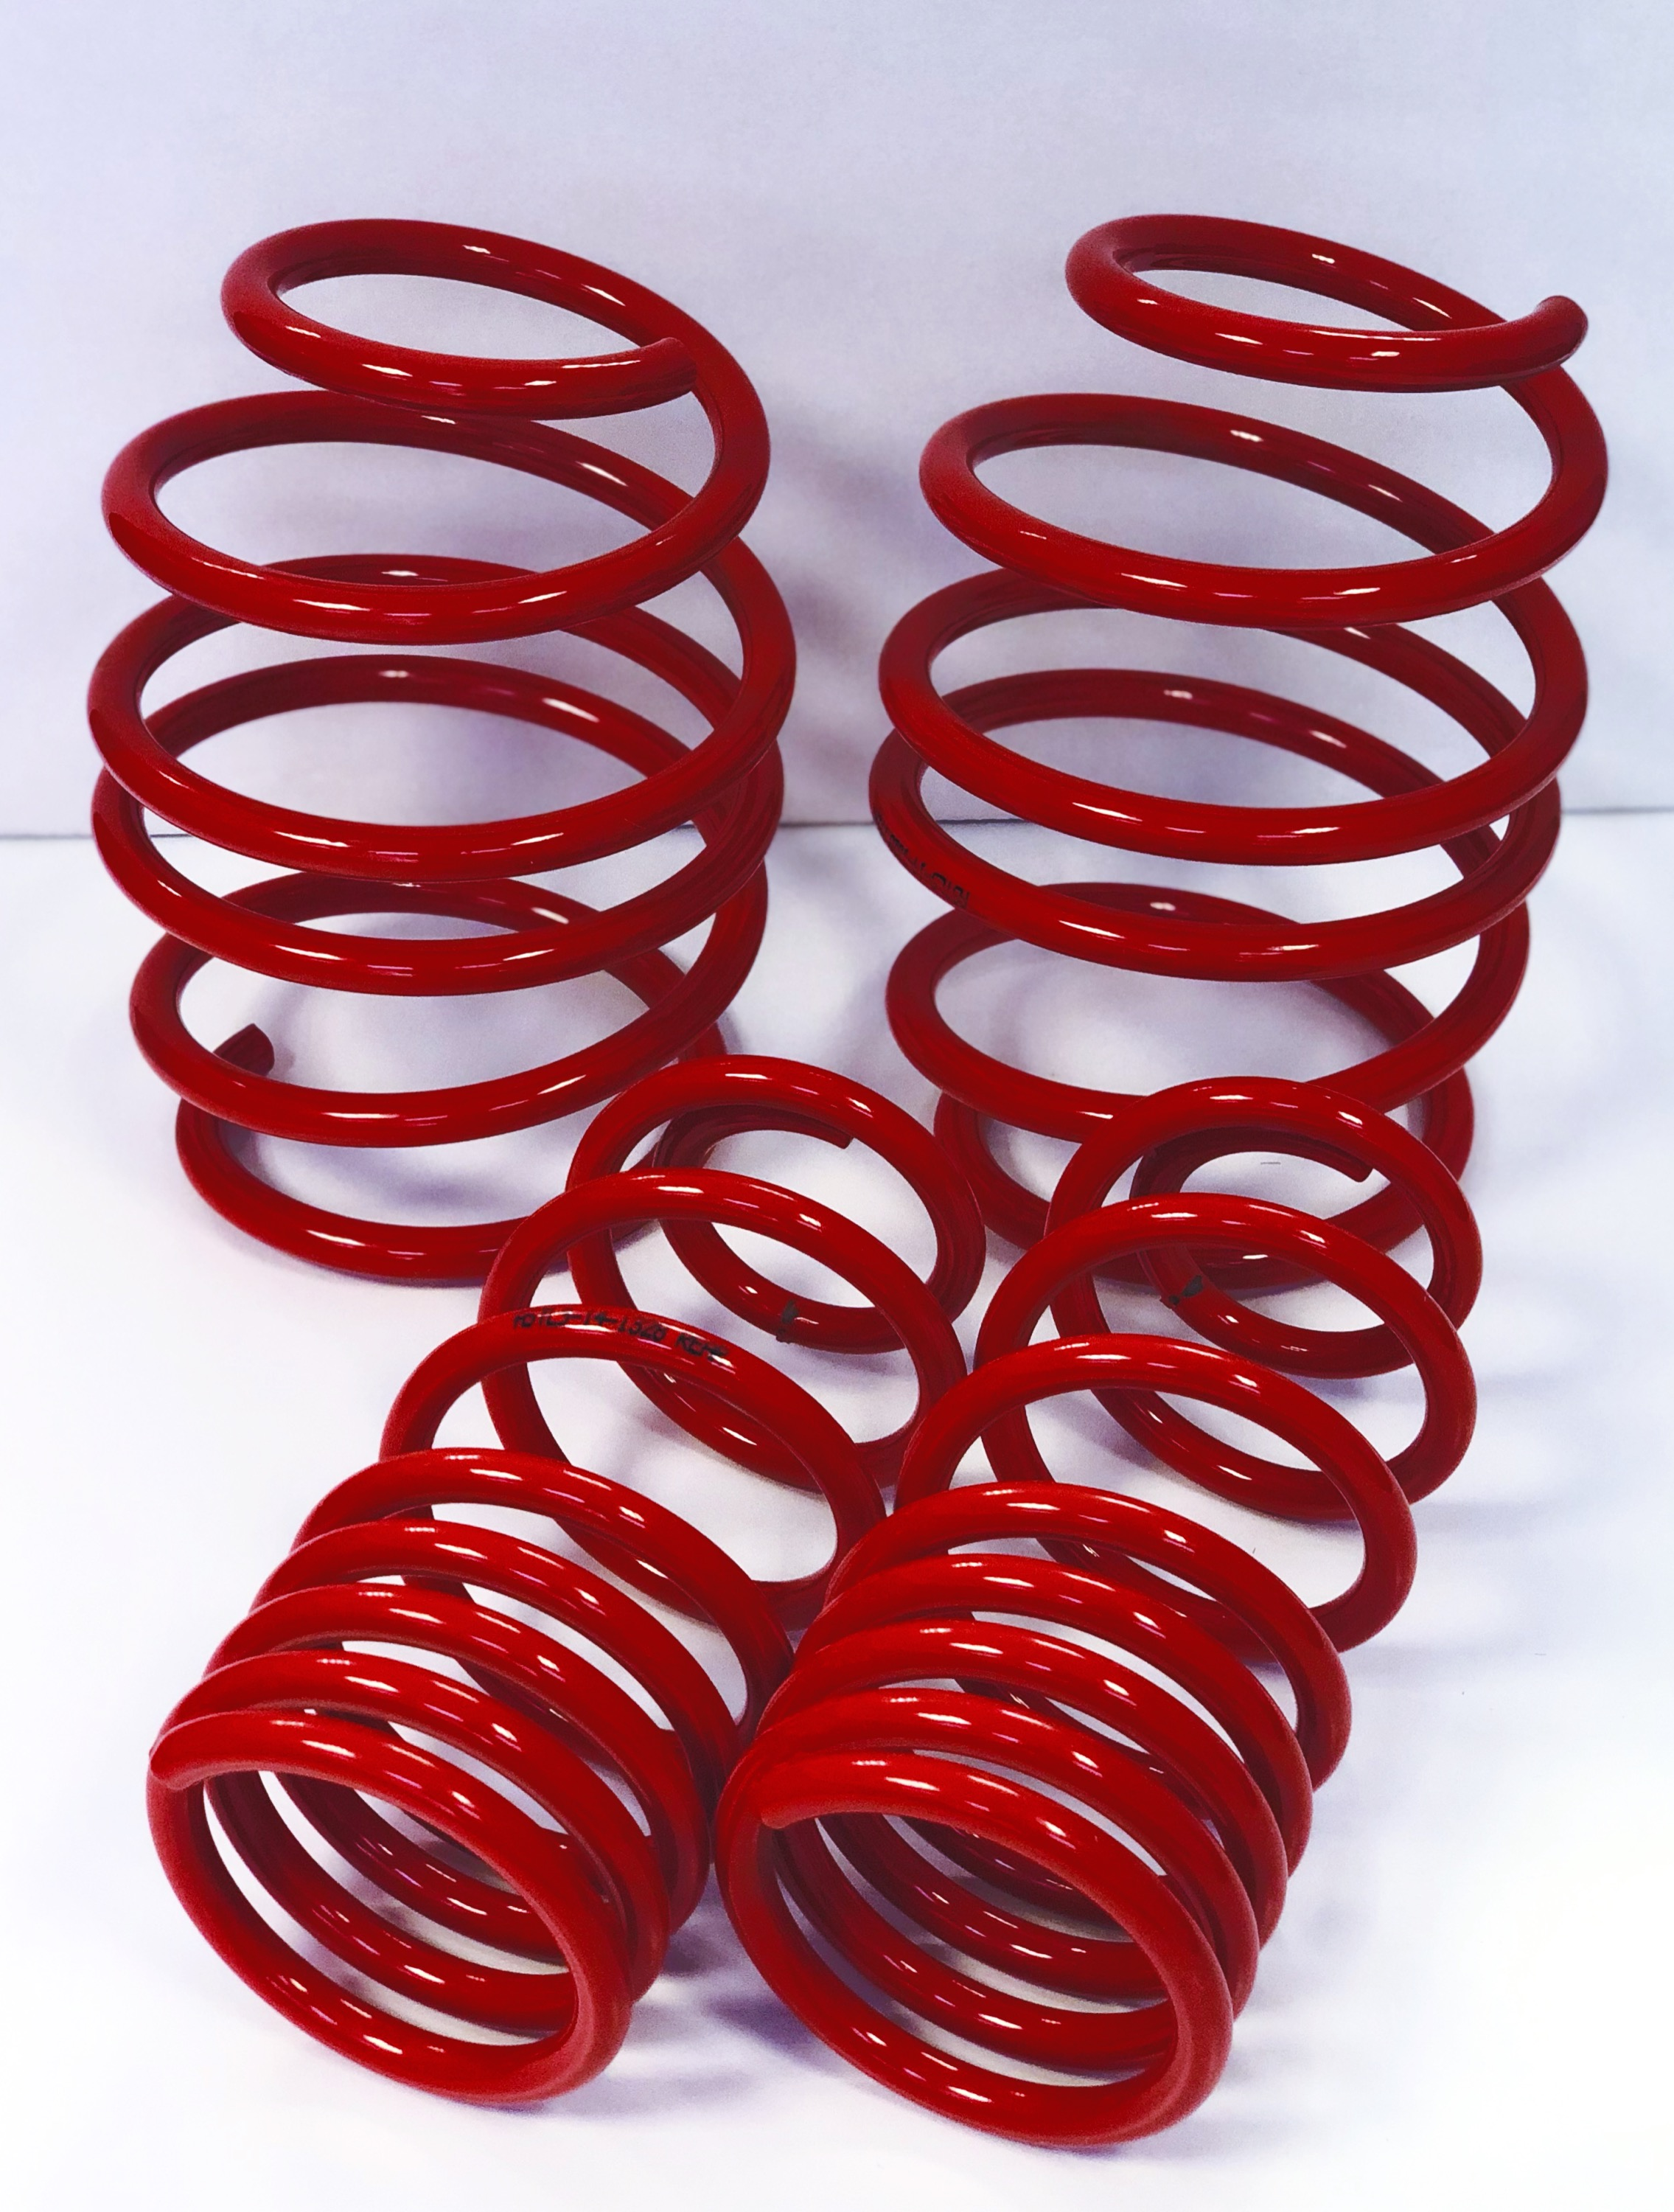 Peugeot 308 AST Suspension Lowering Springs 35/15